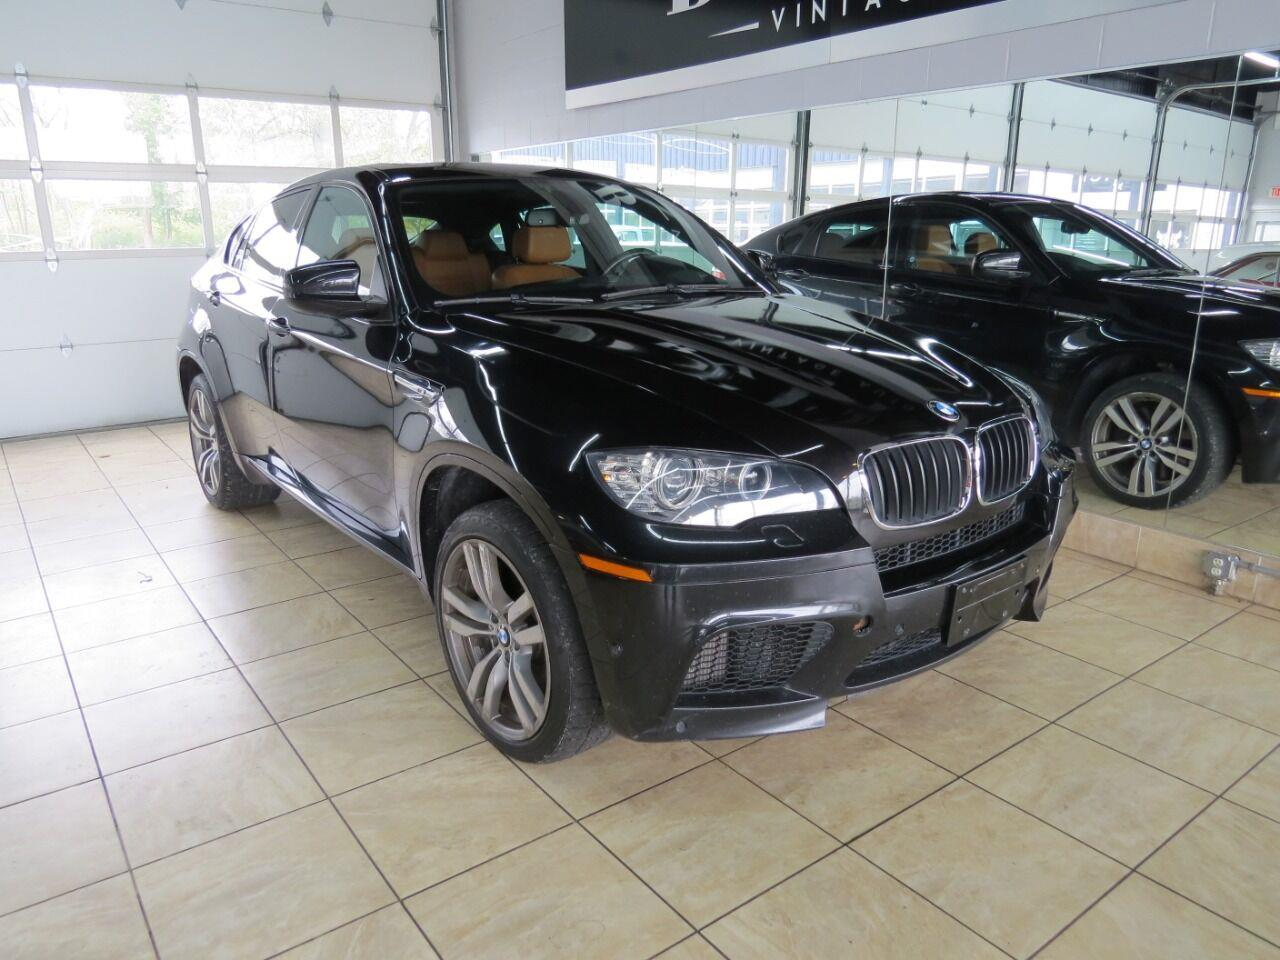 2012 BMW X6 (CC-1416231) for sale in St. Charles, Illinois